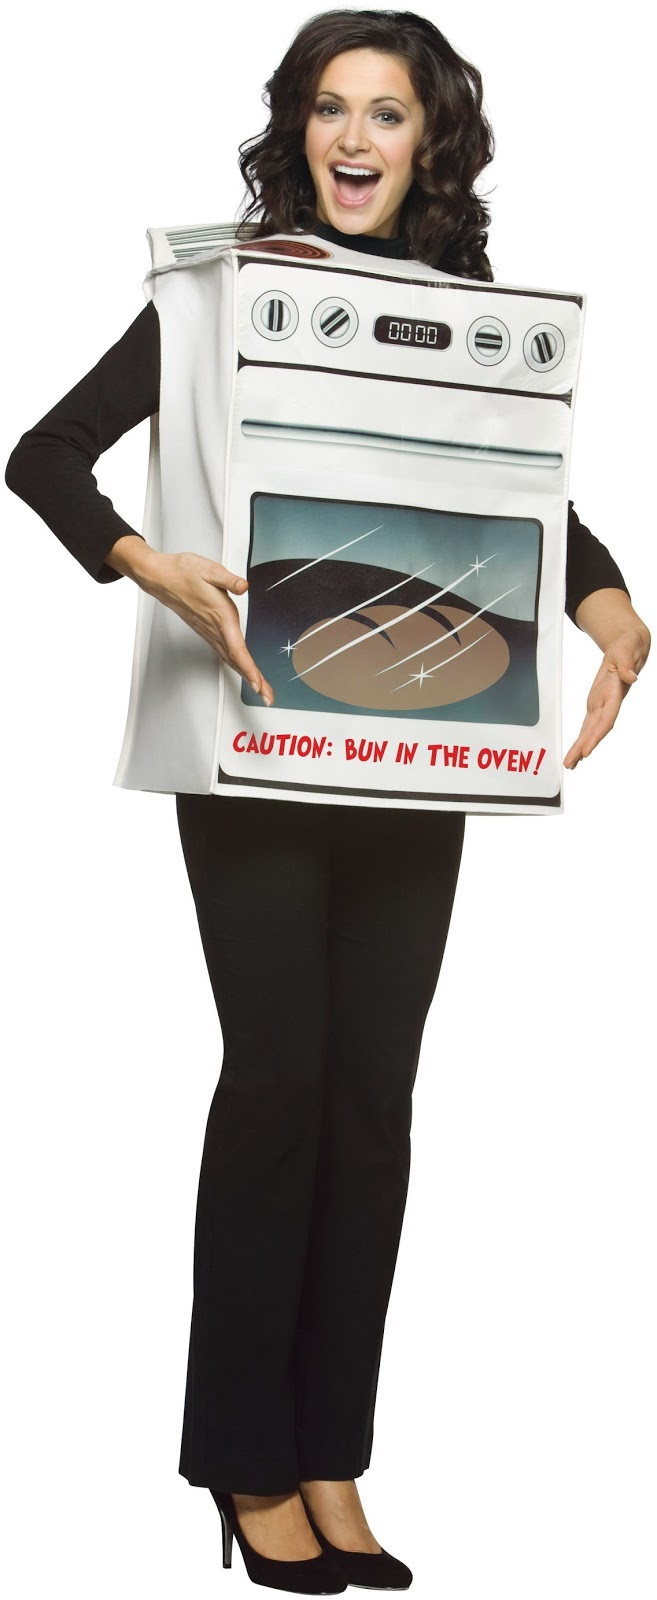 http://www.partybell.com/p-2598-bun-in-the-oven-adult-costume.aspx?utm_source=Blog&utm_medium=Social&utm_campaign=International-joke-day-costume-ideas